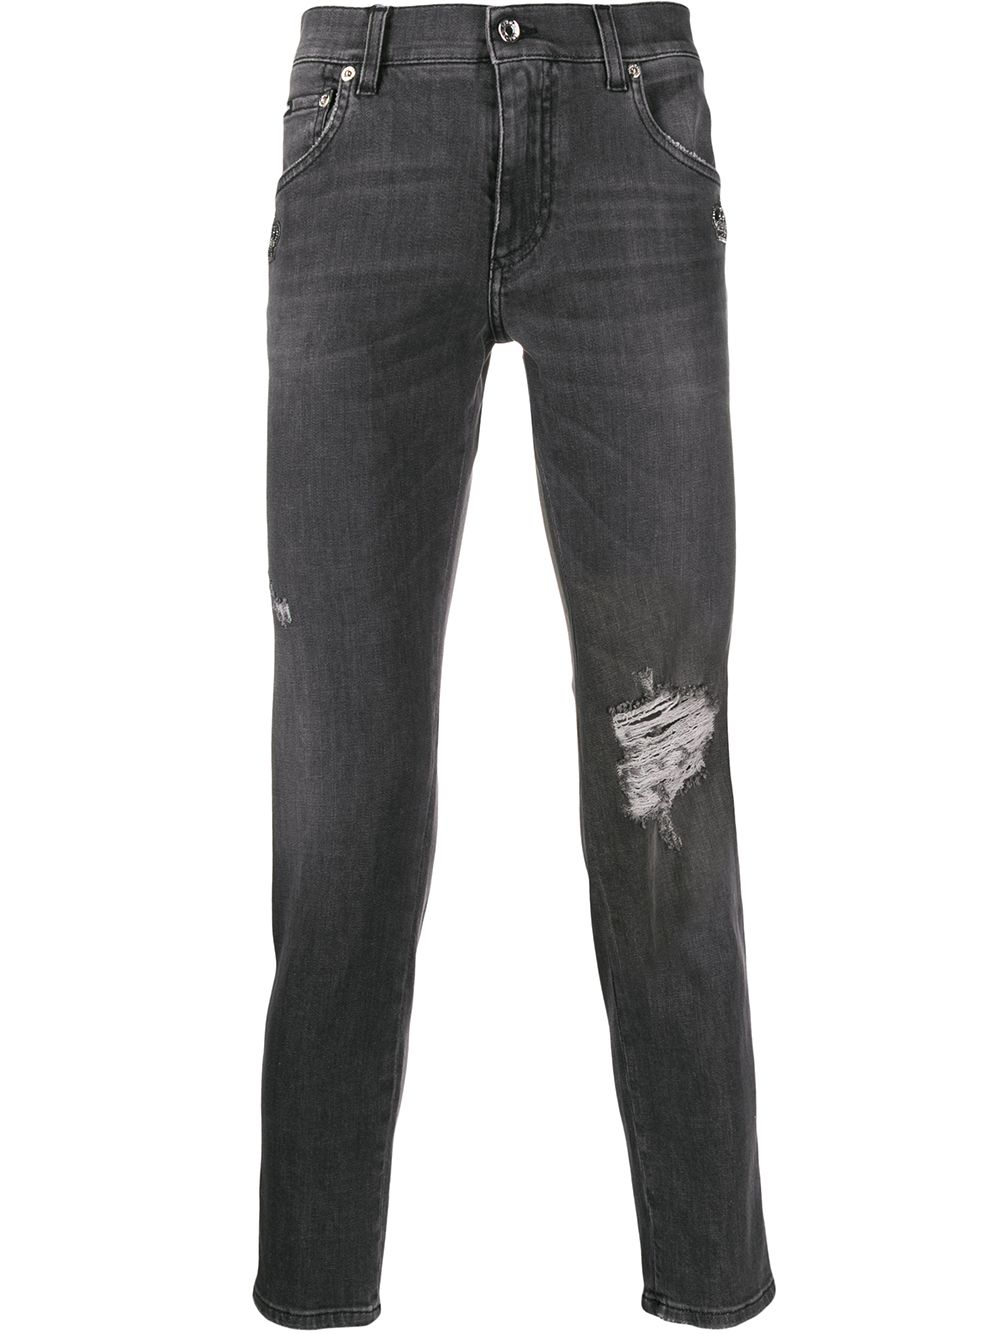 Jeans With Stamp